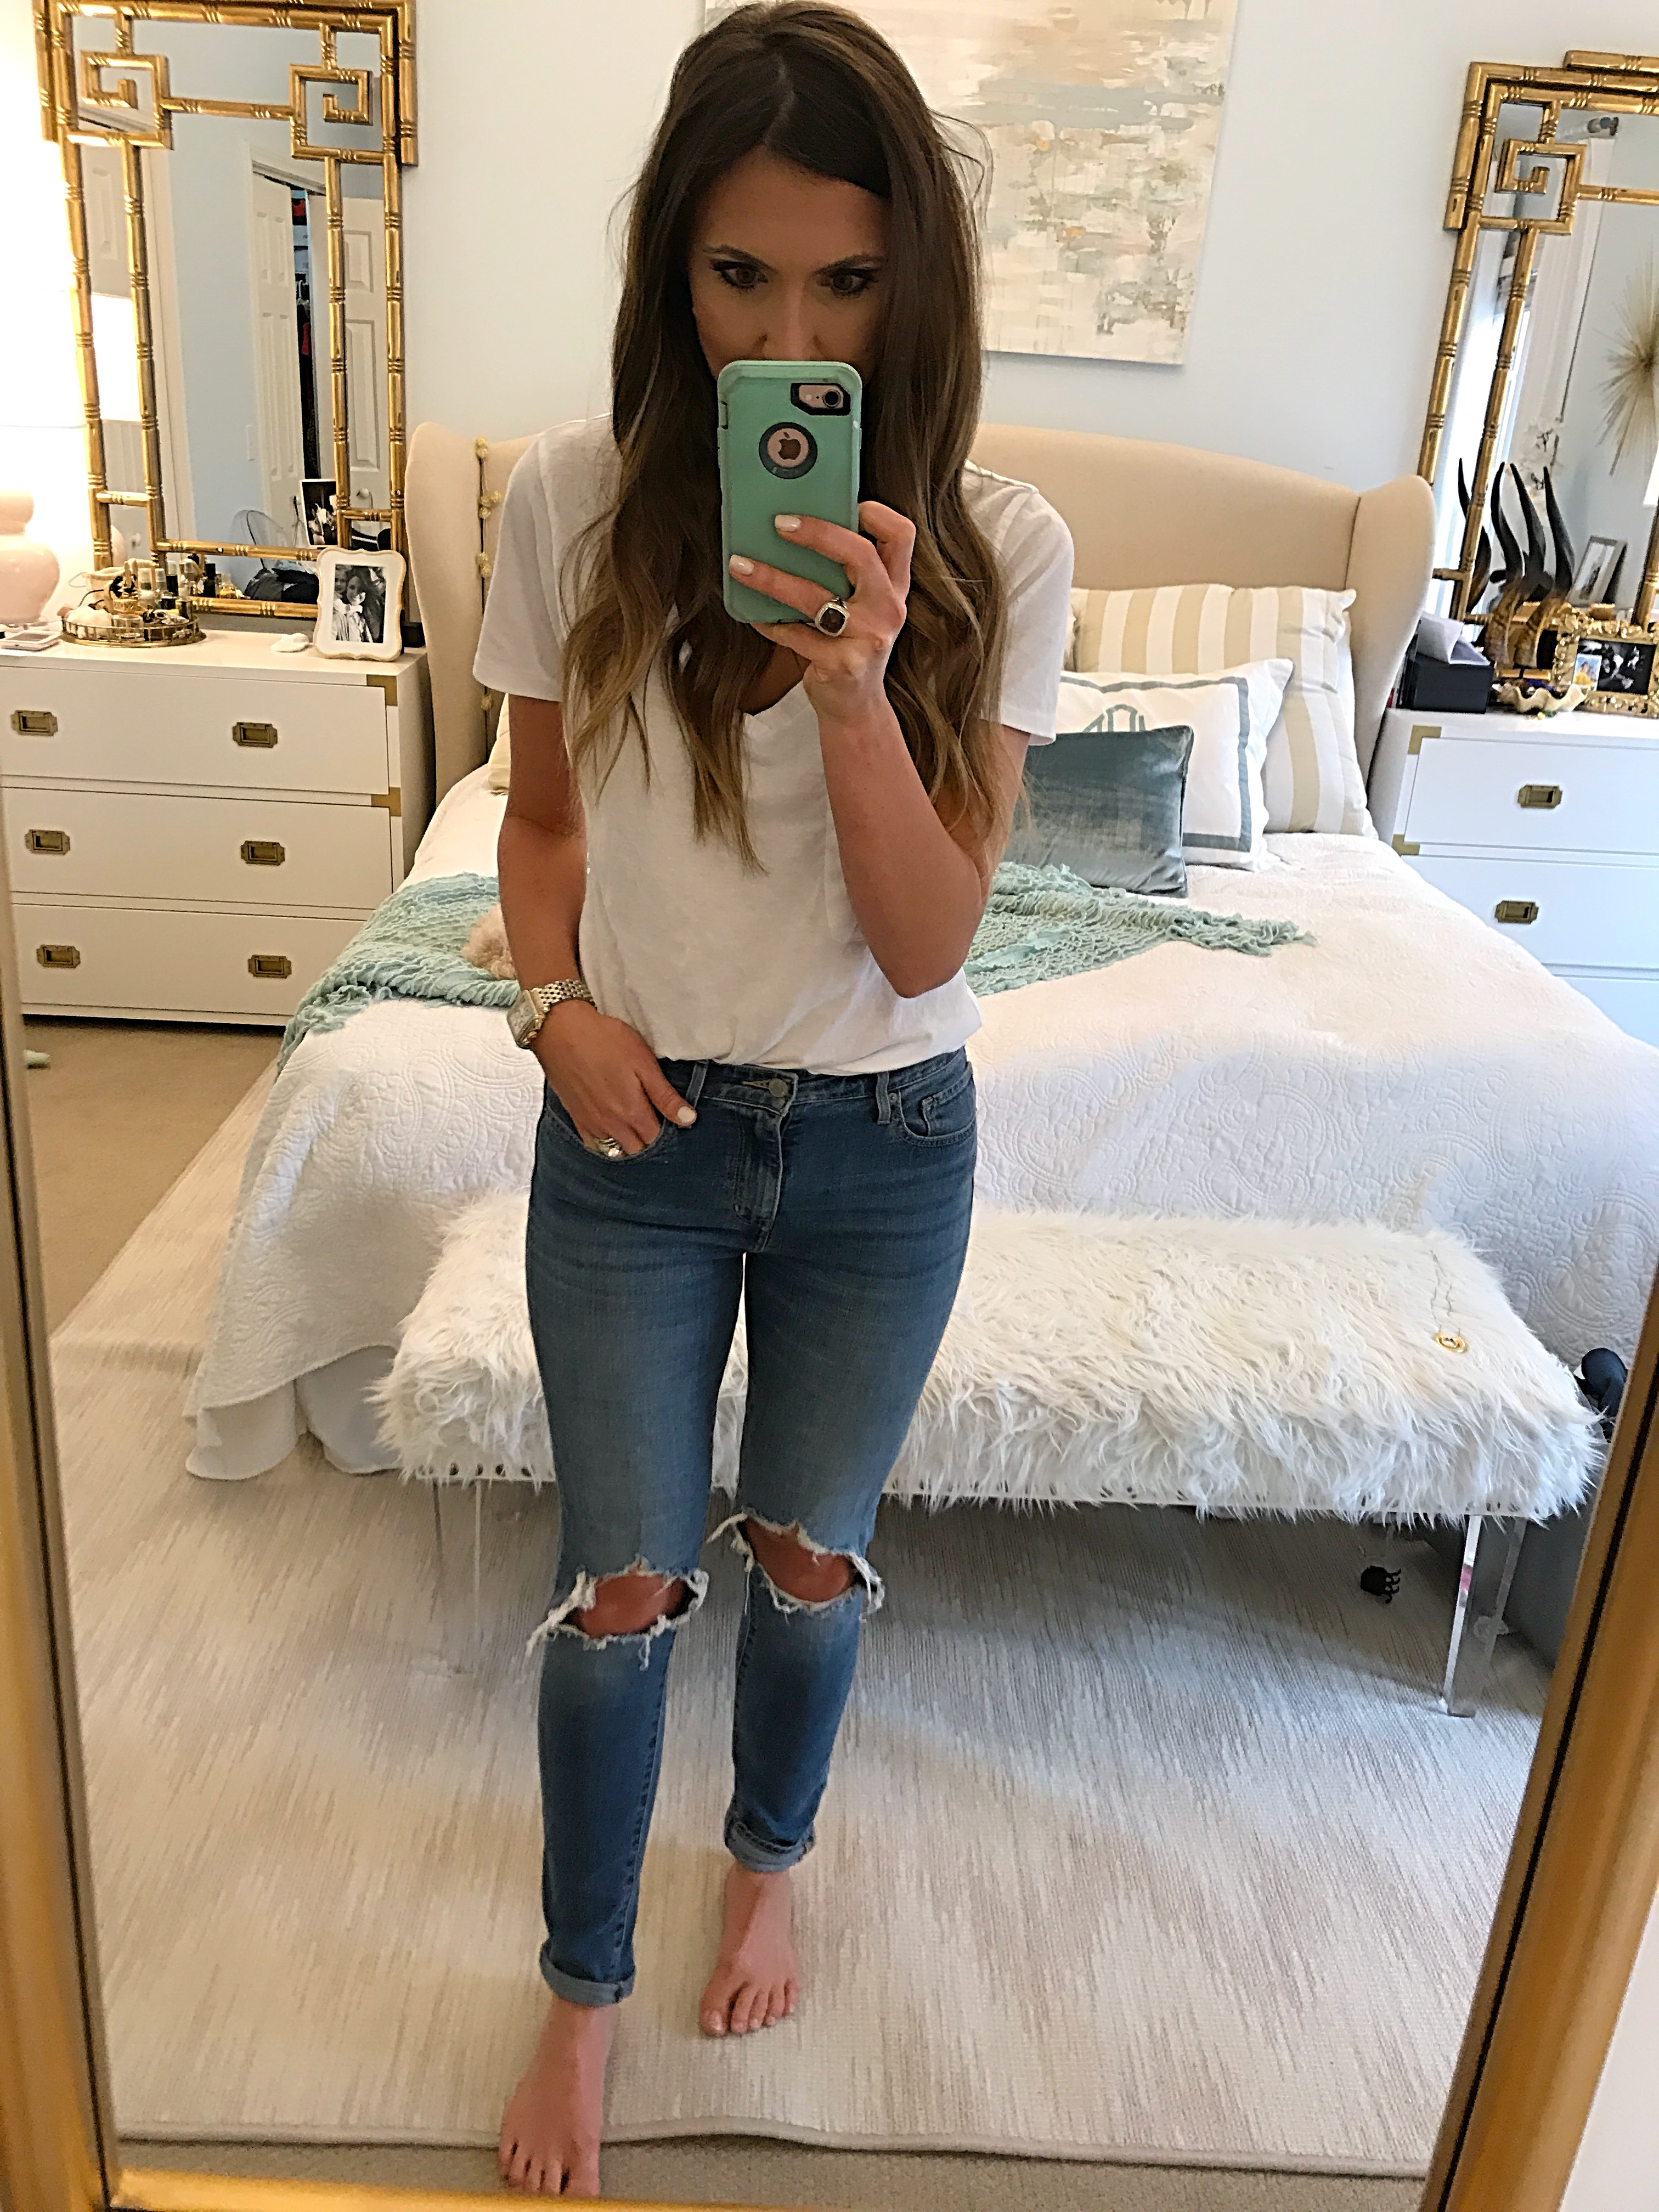 Levi's Busted Knee Skinny Jeans Fit Review